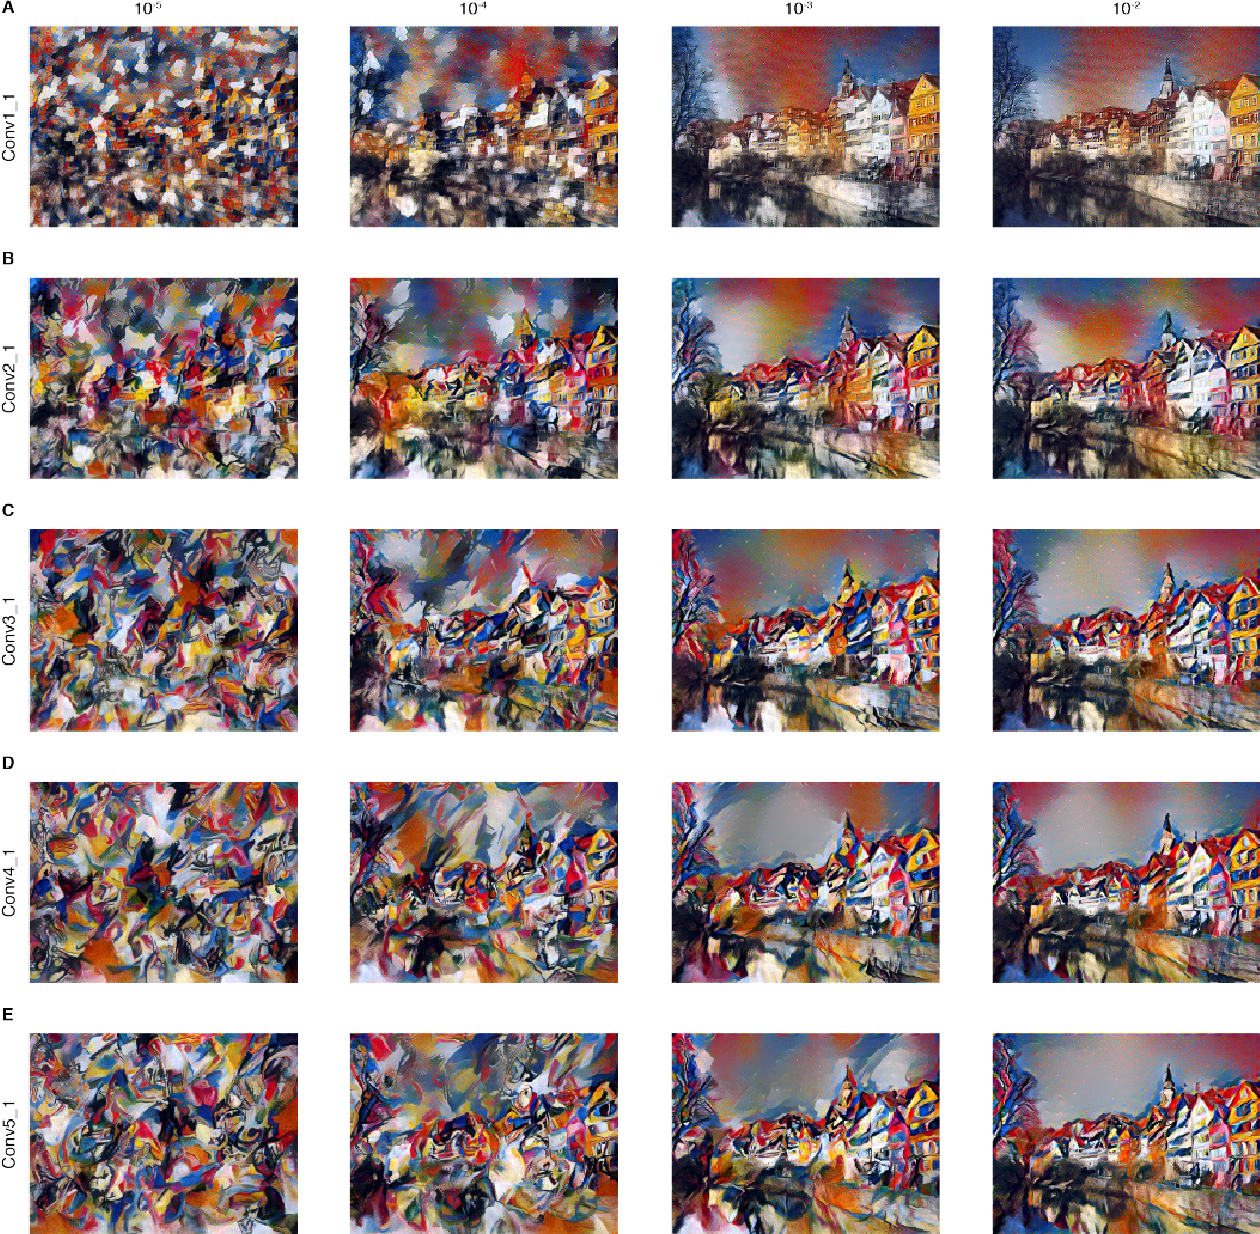 Figure 3: Detailed results for the style of the painting Composition VII by Wassily Kandinsky. The rows show the result of matching the style representation of increasing subsets of the CNN layers (see Methods). We find that the local image structures captured by the style representation increase in size and complexity when including style features from higher layers of the network. This can be explained by the increasing receptive field sizes and feature complexity along the network's processing hierarchy. The columns show different relative weightings between the content and style reconstruction. The number above each column indicates the ratio ↵/ between the emphasis on matching the content of the photograph and the style of the artwork (see Methods).